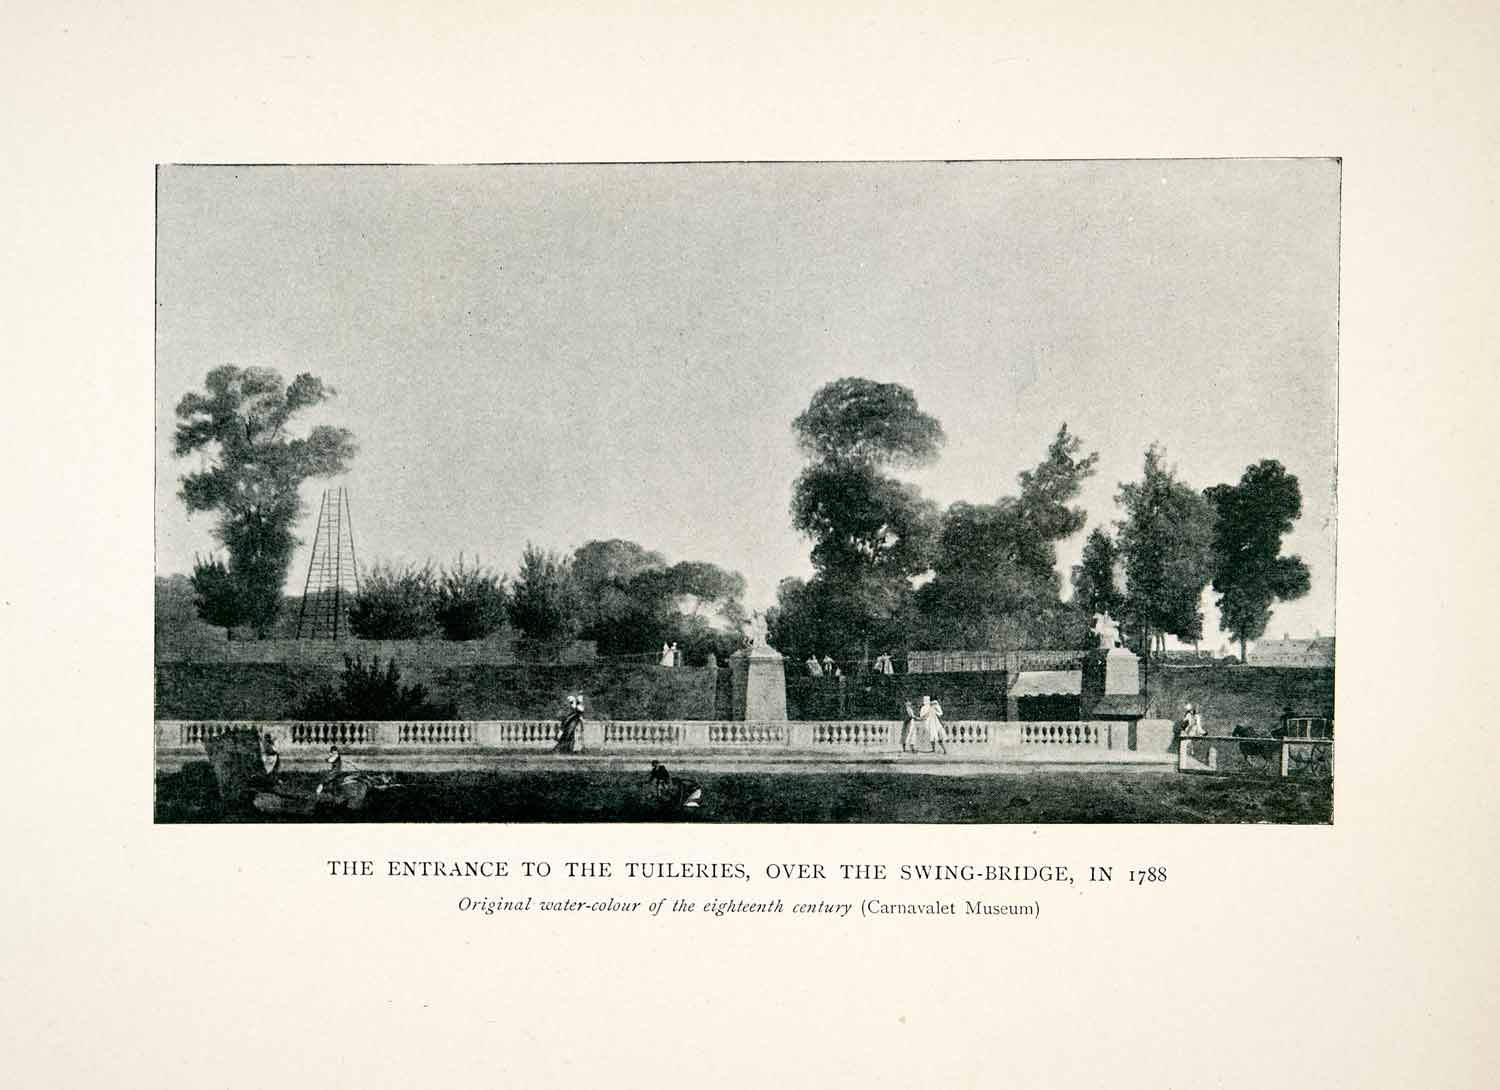 1907 Print entrance Tuileries Swing-Bridge Paris France Botanical Gardens XGCB4